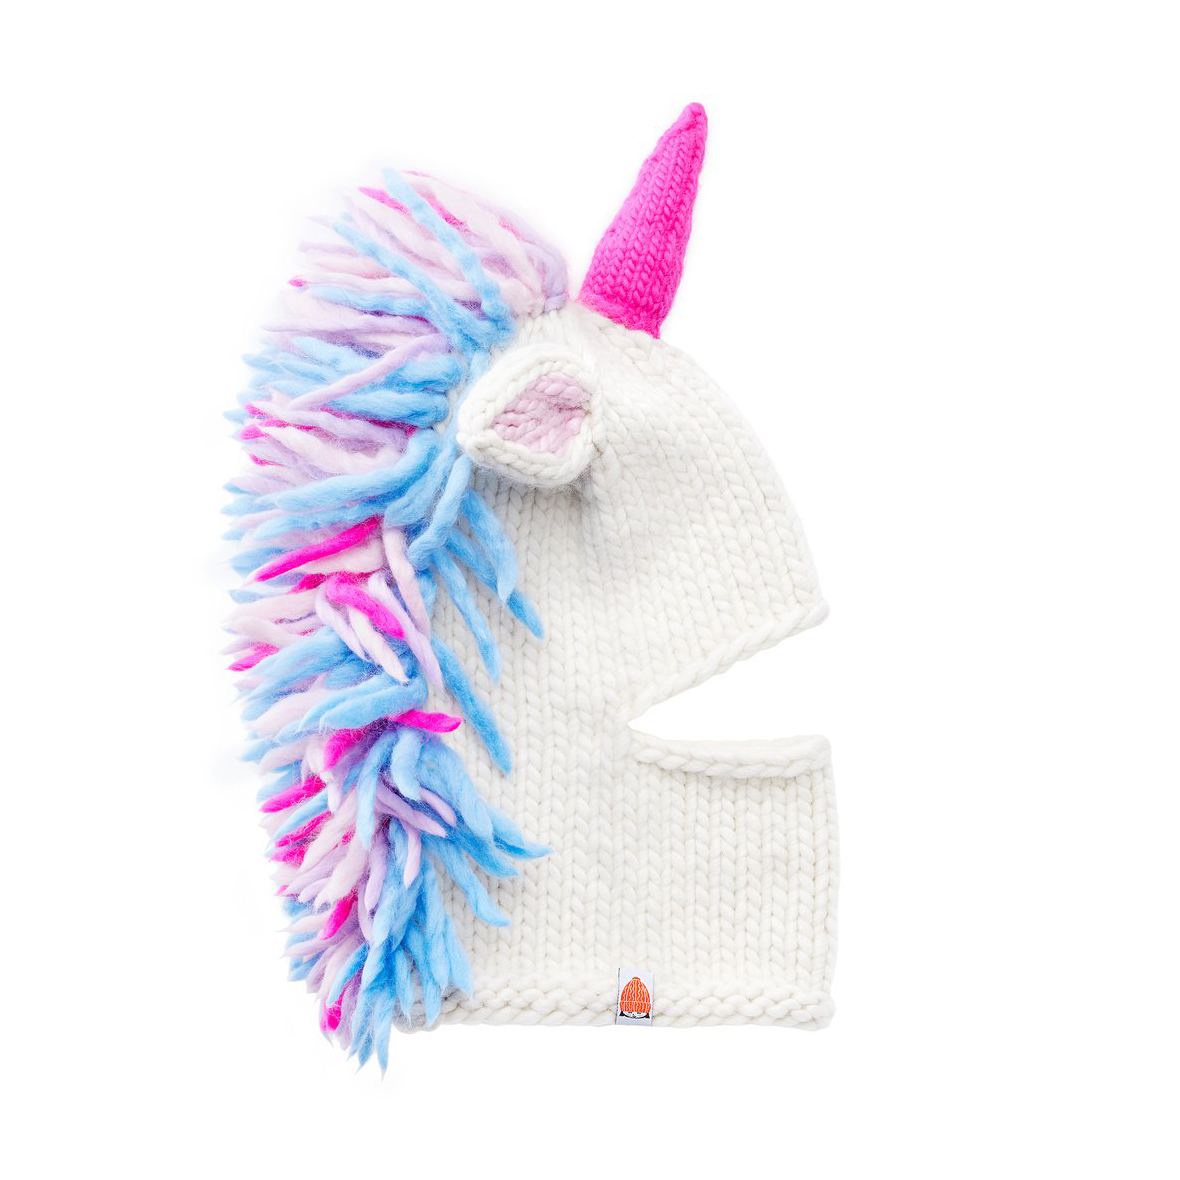 Cute Valentine's Day gifts for kids - Sh*t That I Knit Unicorn Balaklava